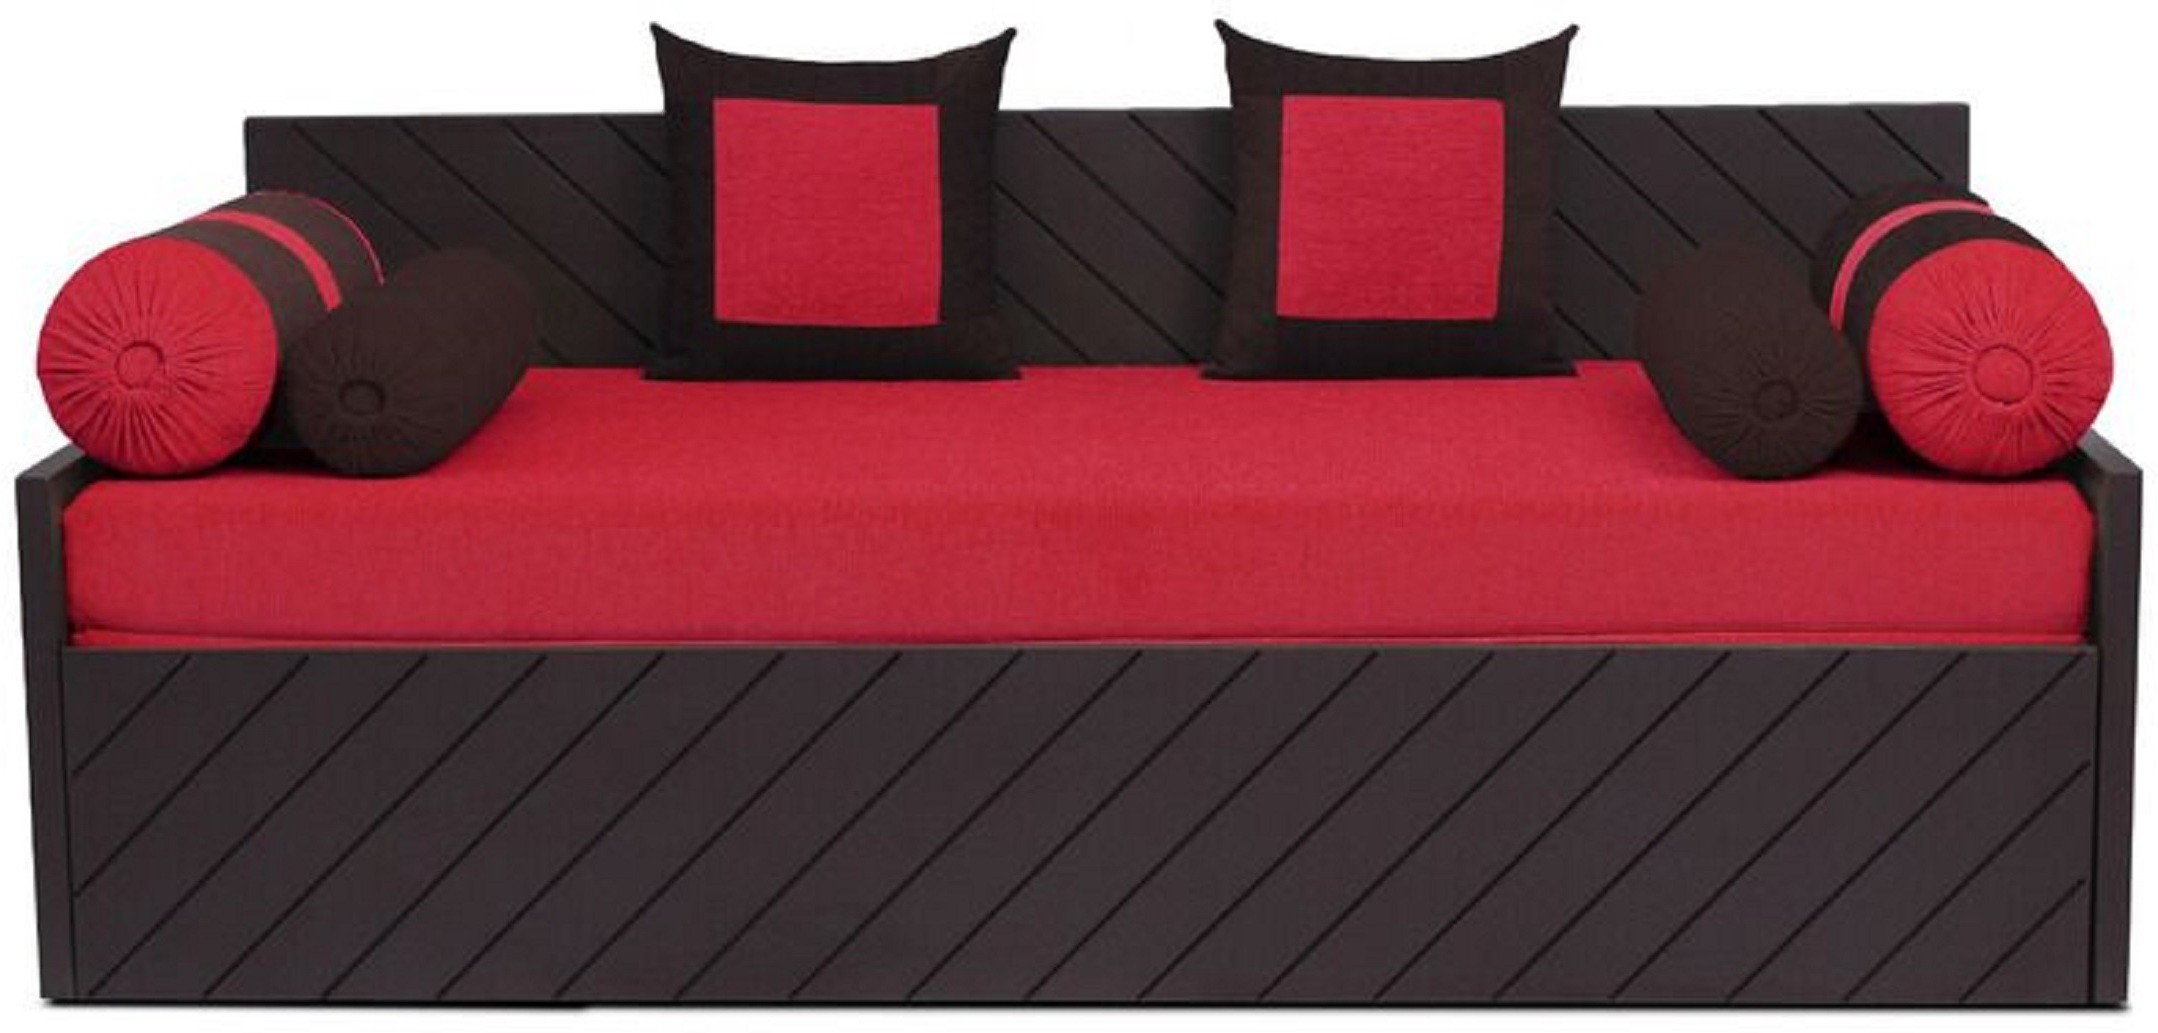 View Auspicious Home Kaiden (2 Pillows, 4 Bolsters) Double Fabric Sofa Bed(Finish Color - Red Mechanism Type - Pull Out) Furniture (Auspicious Home)